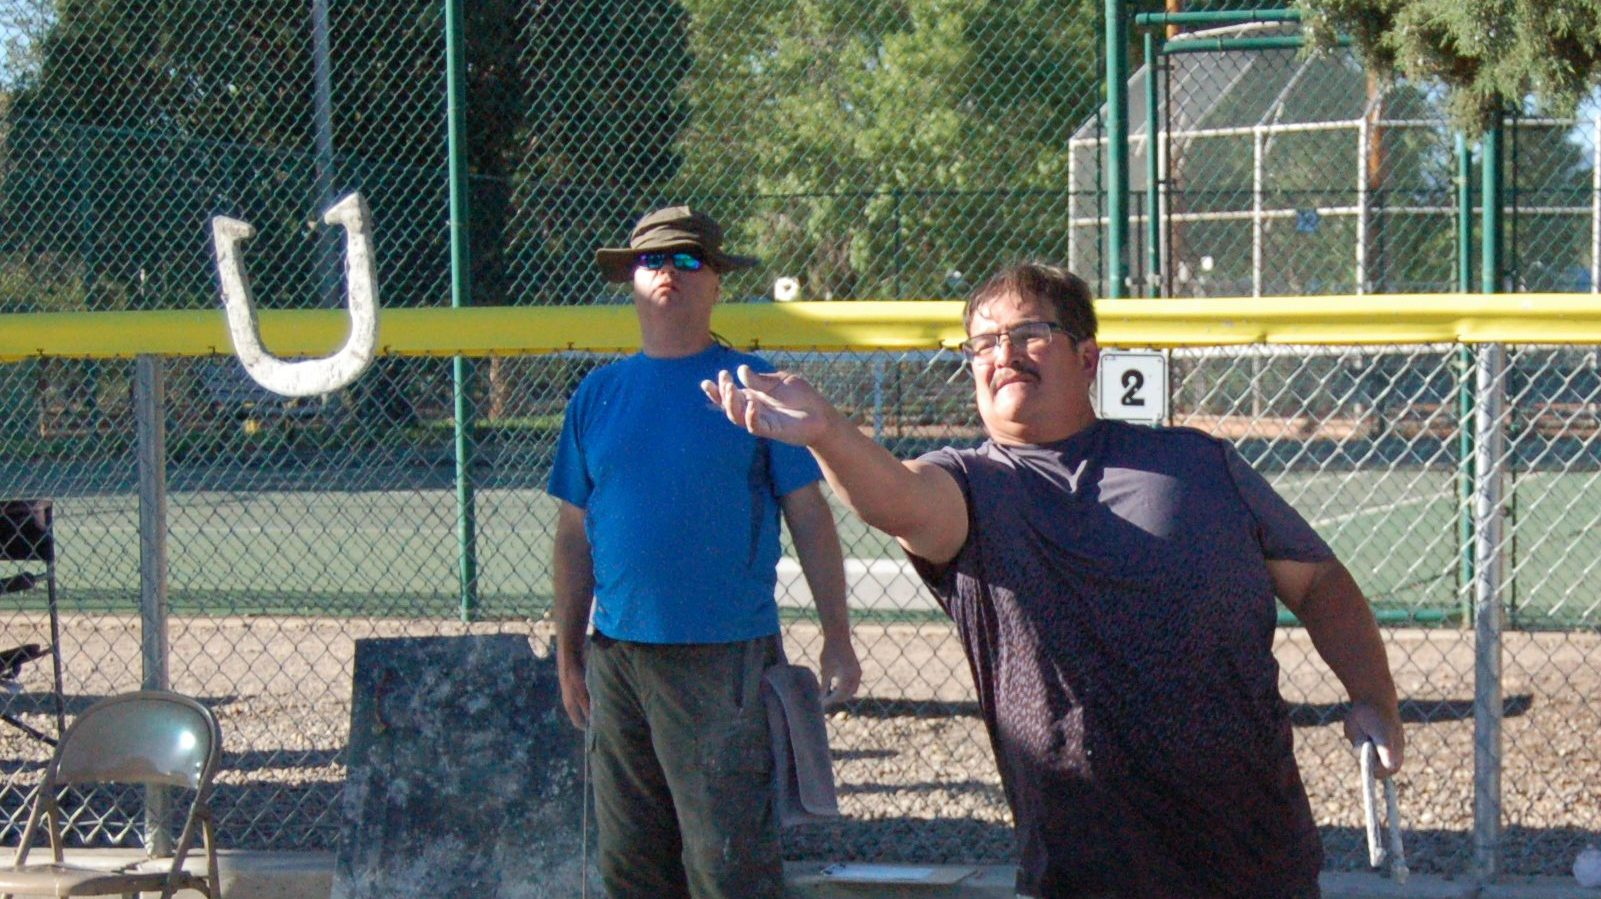 National Senior Games in Albuquerque: all about 'staying active'